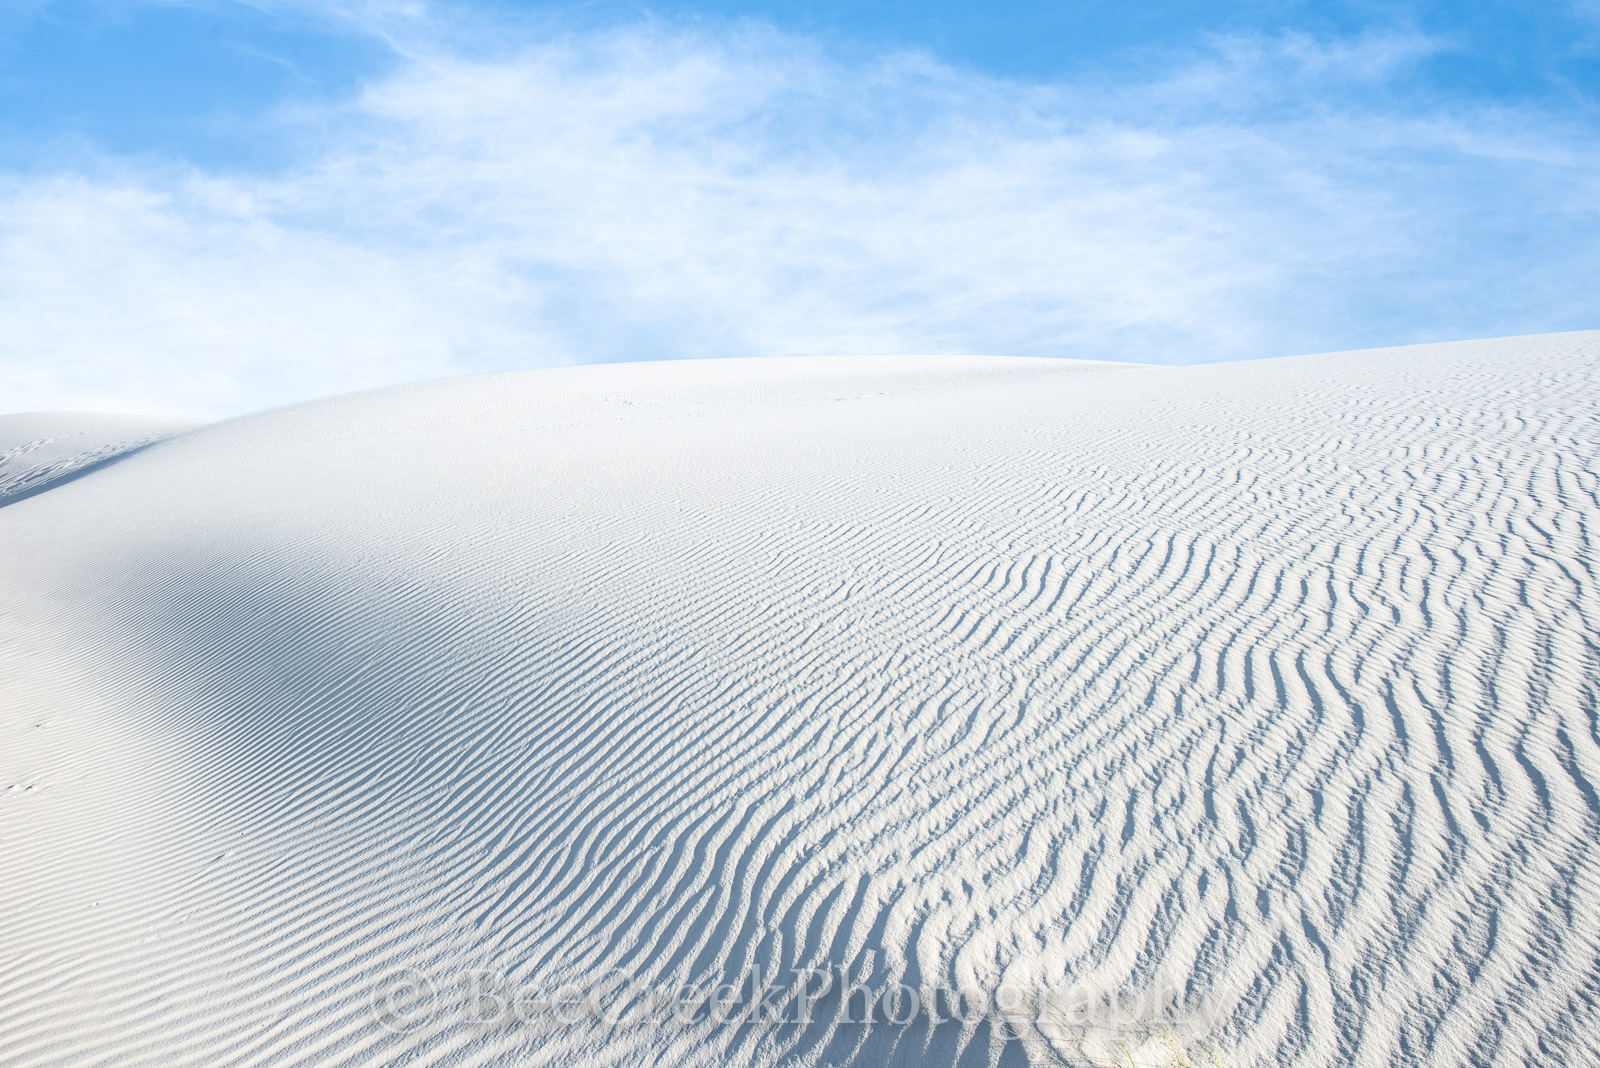 White Sands of NM- Sand dunes in White Sands New Mexico. These dunes are endless desertlandscape of white with...